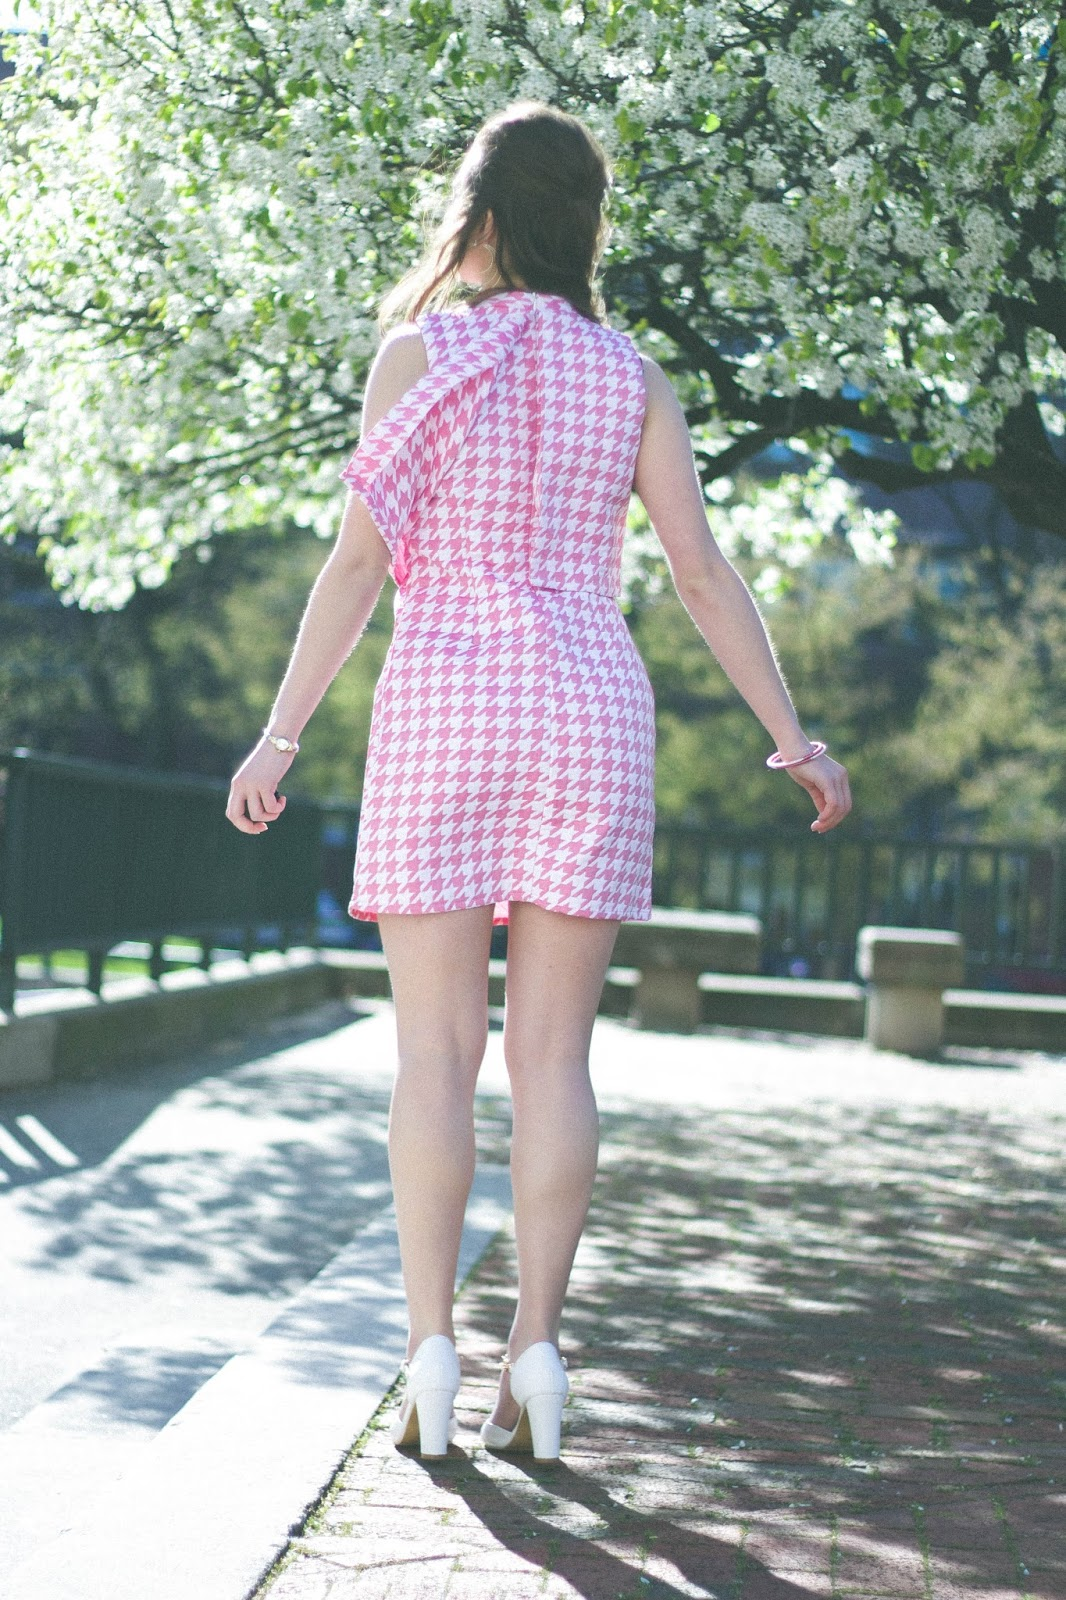 60's, retro, vintage, style, fashion, lana del rey, retro style, vintage style, lana del rey style, outfits, jackie kennedy style, jackie o, fashion blogger, movie blogger, movies, bouffant, classic style, spring style, houndstooth dress, glamorous